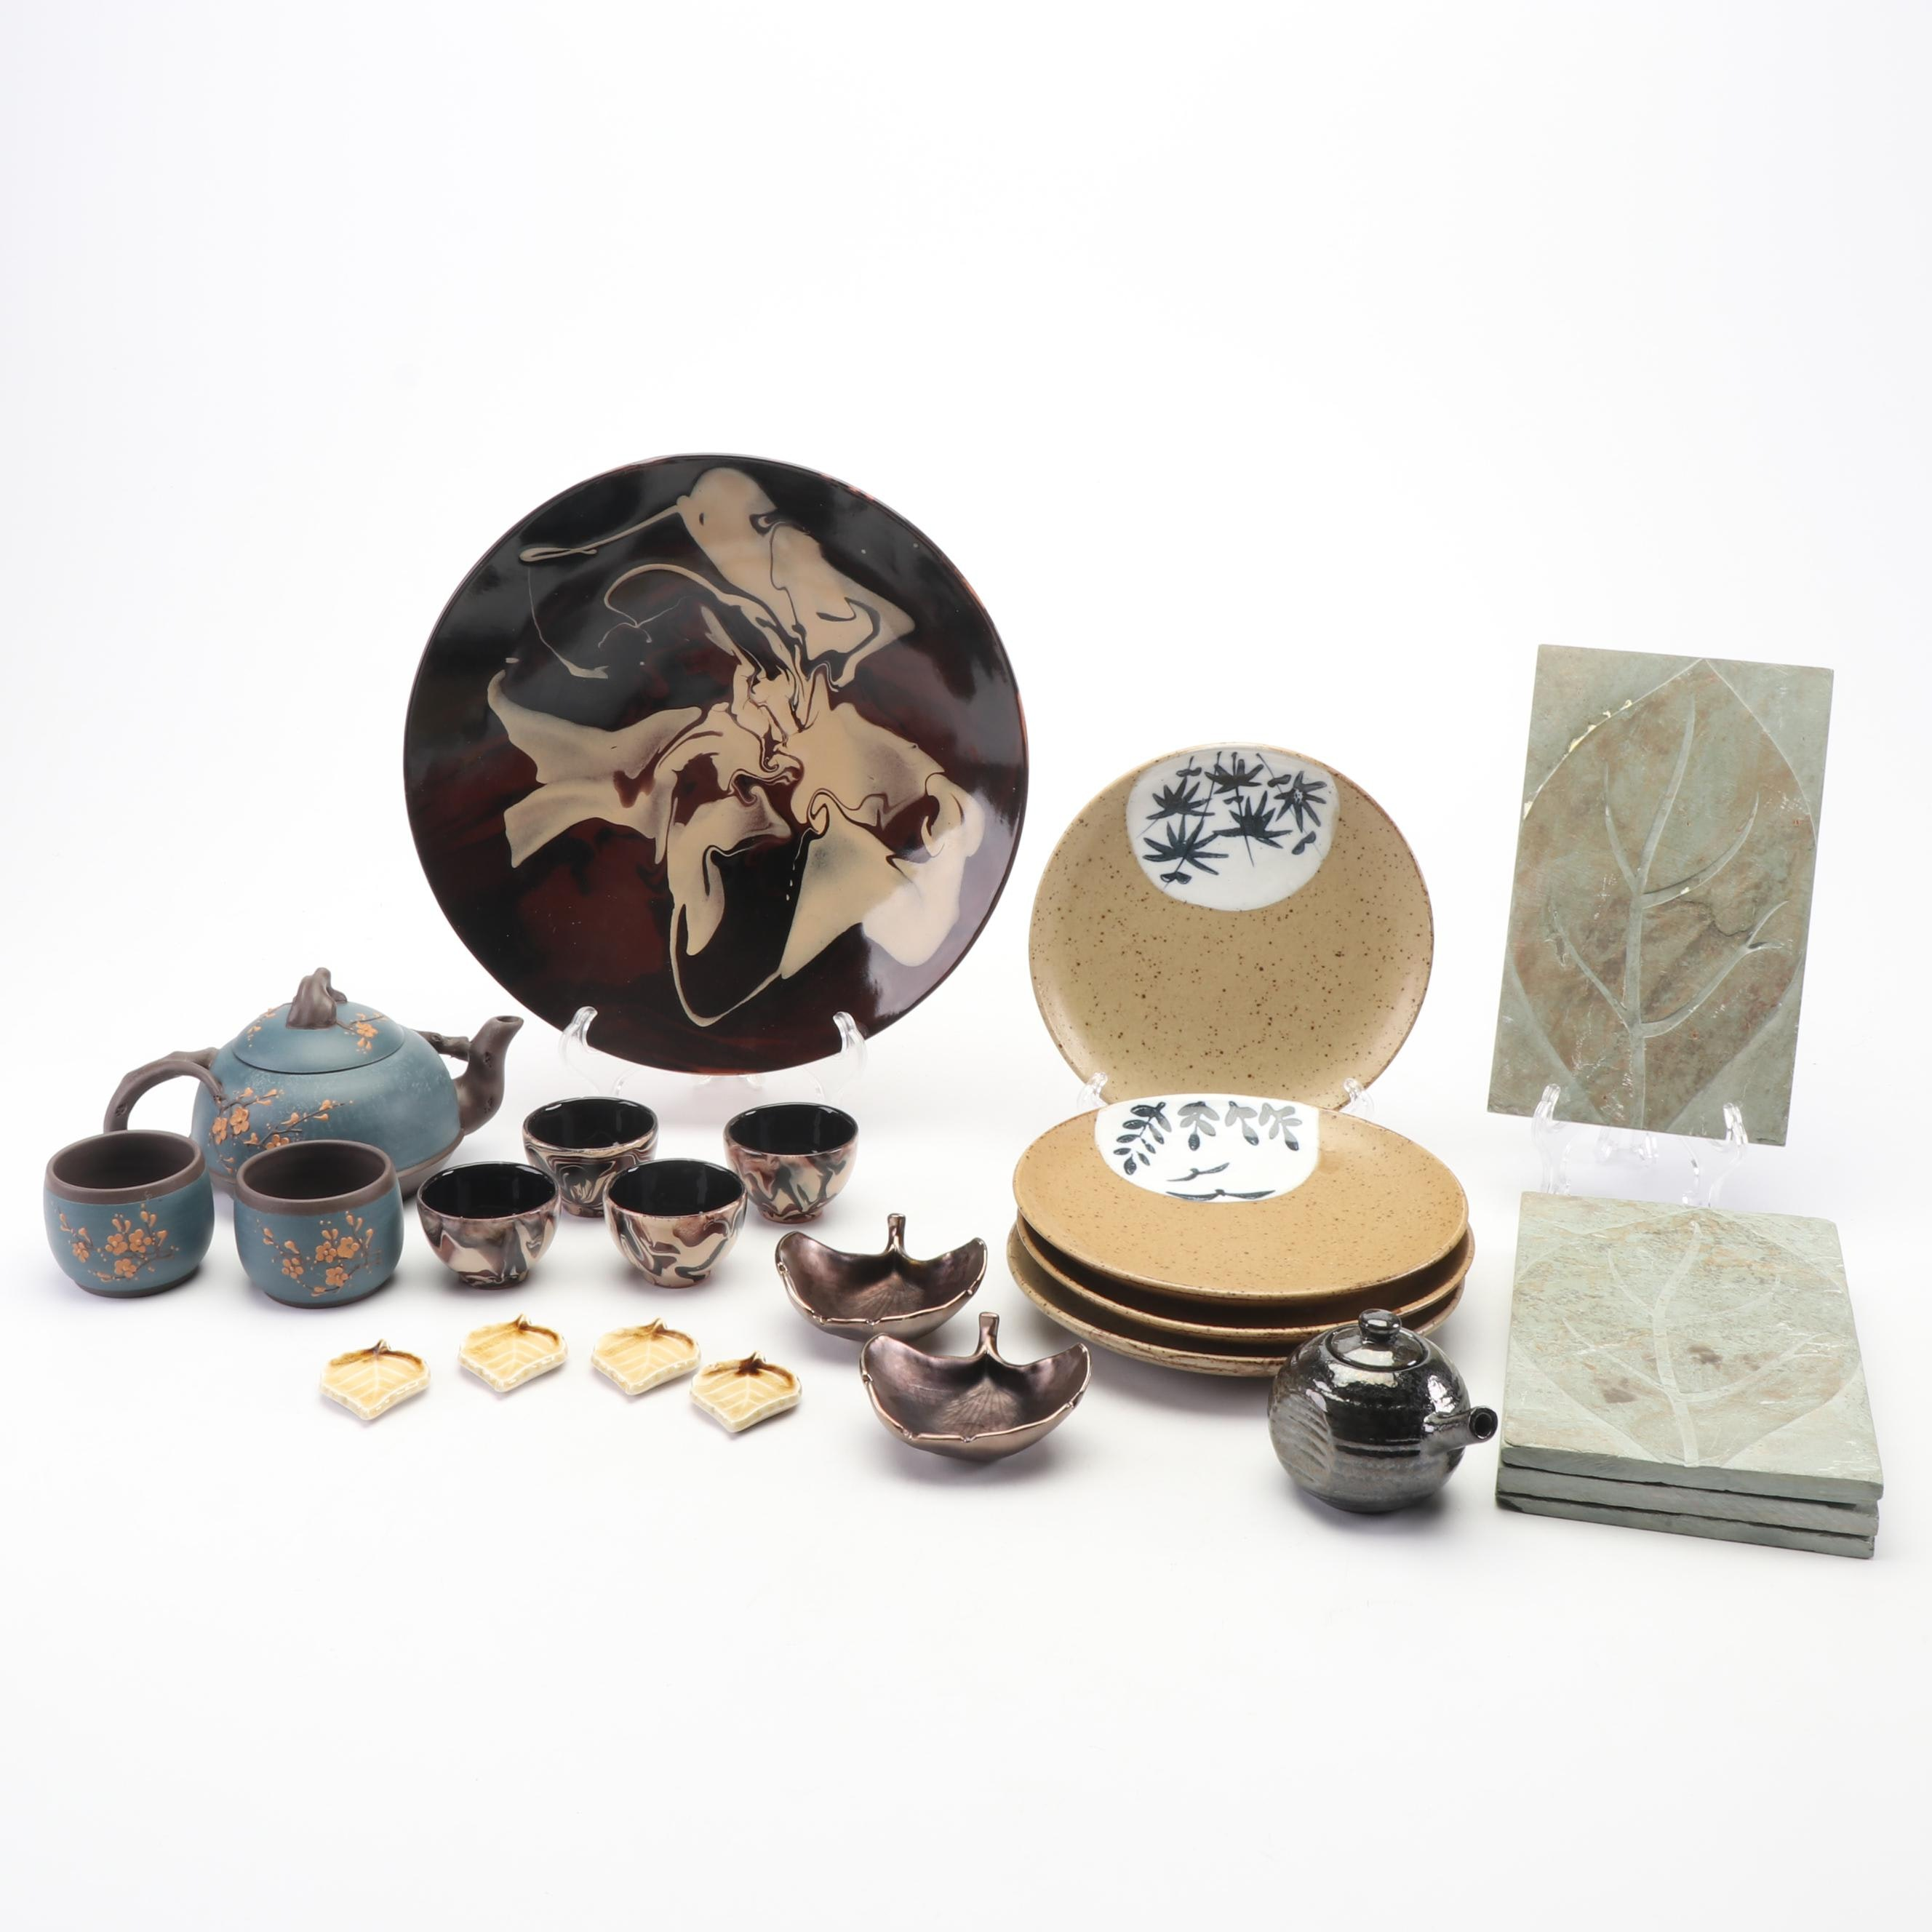 Teavana Yixing Teapot and Assorted Ceramic Dinnerware featuring Vietri